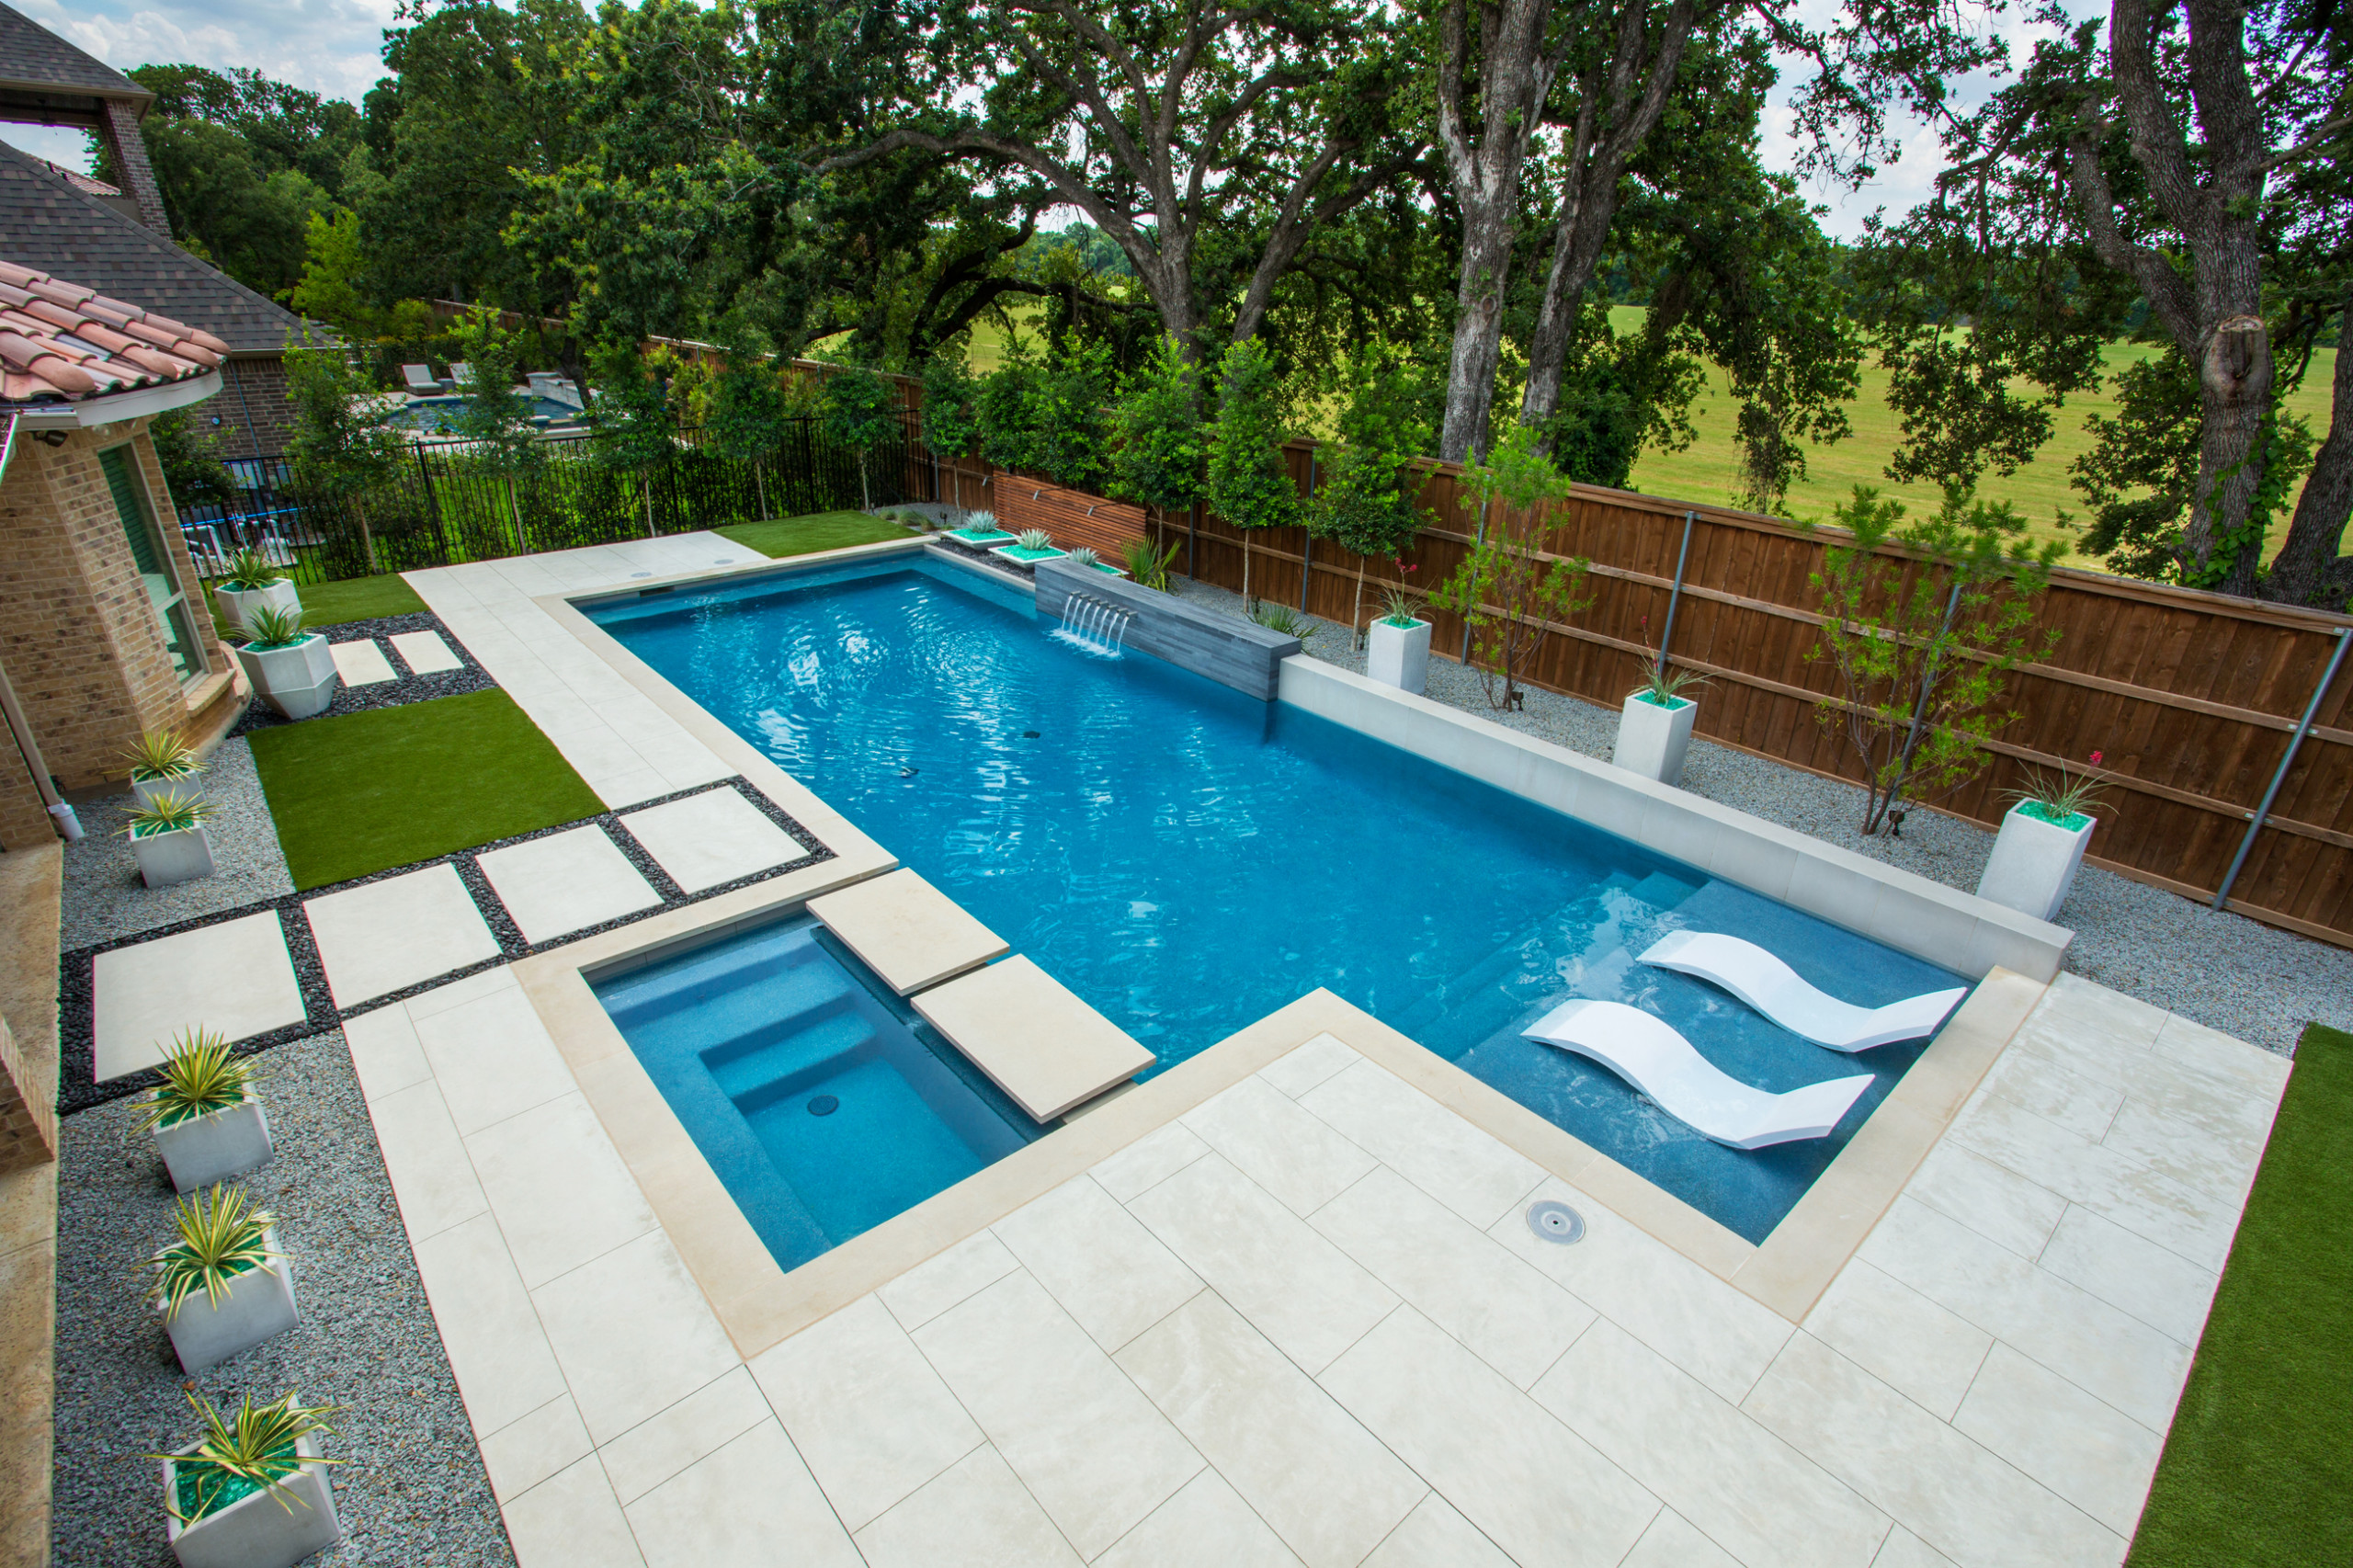 75 Beautiful Mid Sized Backyard Pool Pictures Ideas July 2021 Houzz